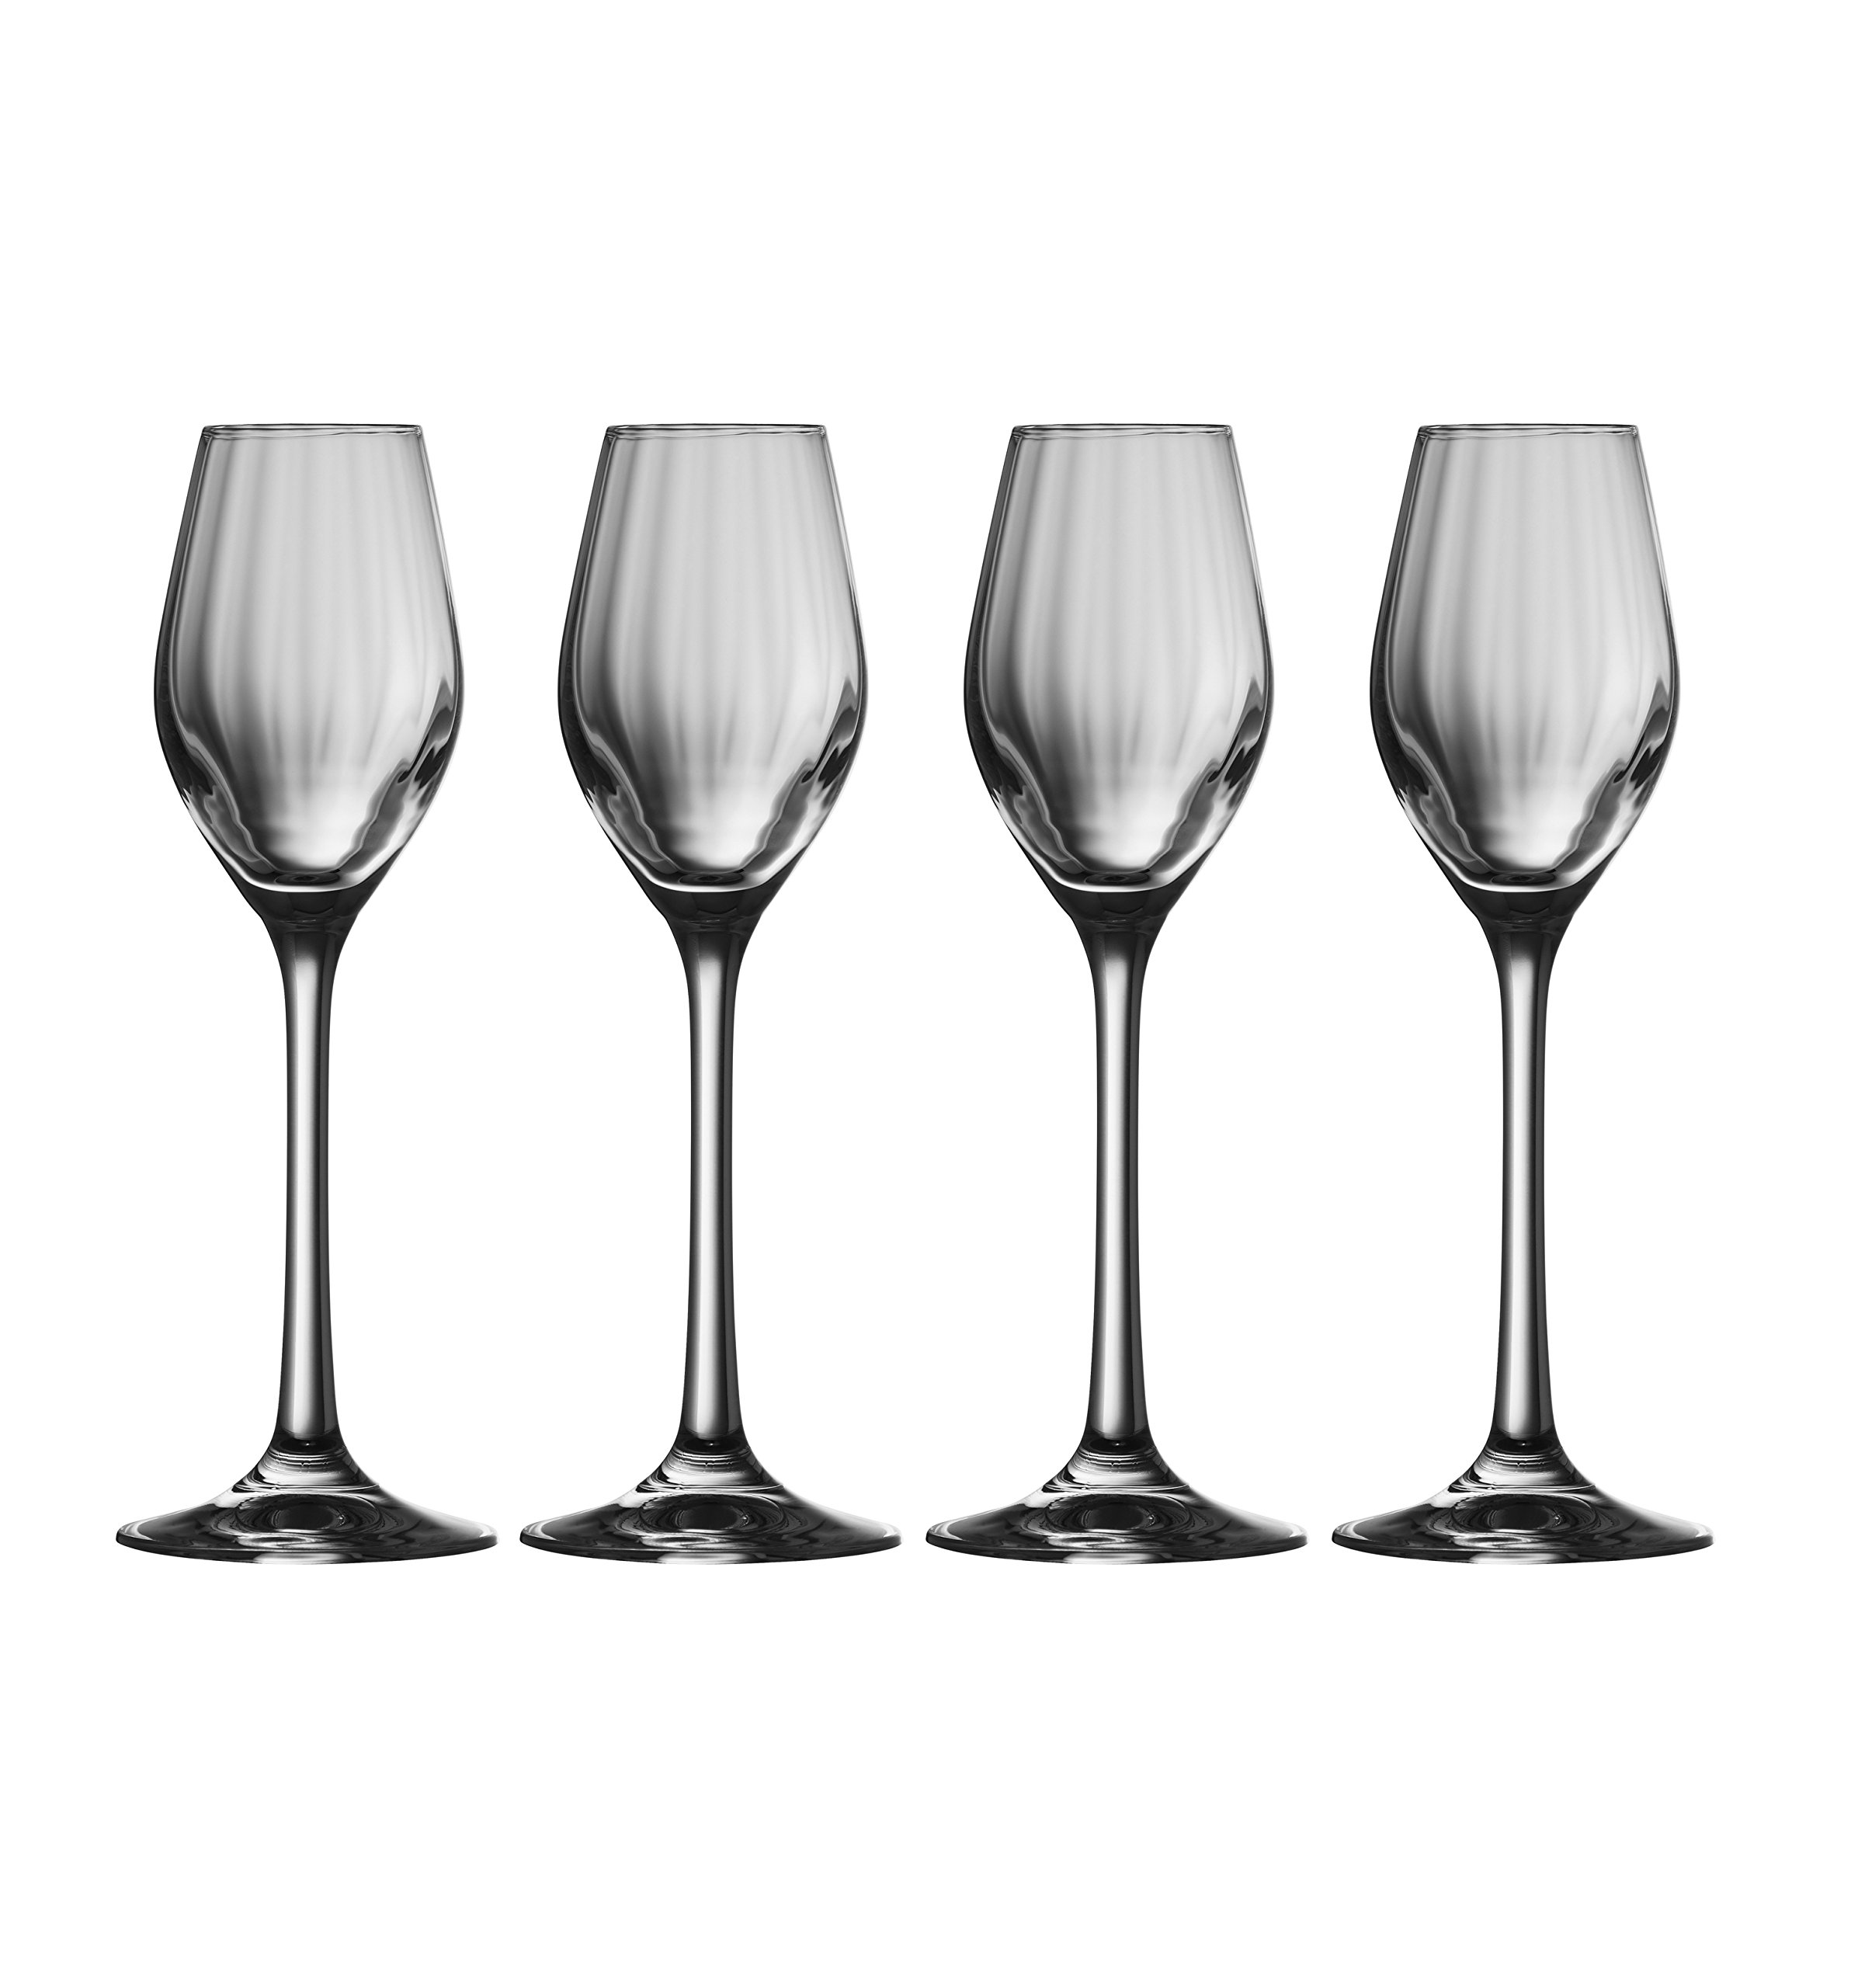 Galway Crystal 32005/4 Erne Sherry/Liqueur (Set of 4) Snifter Glasses, Transparent by Galway Crystal